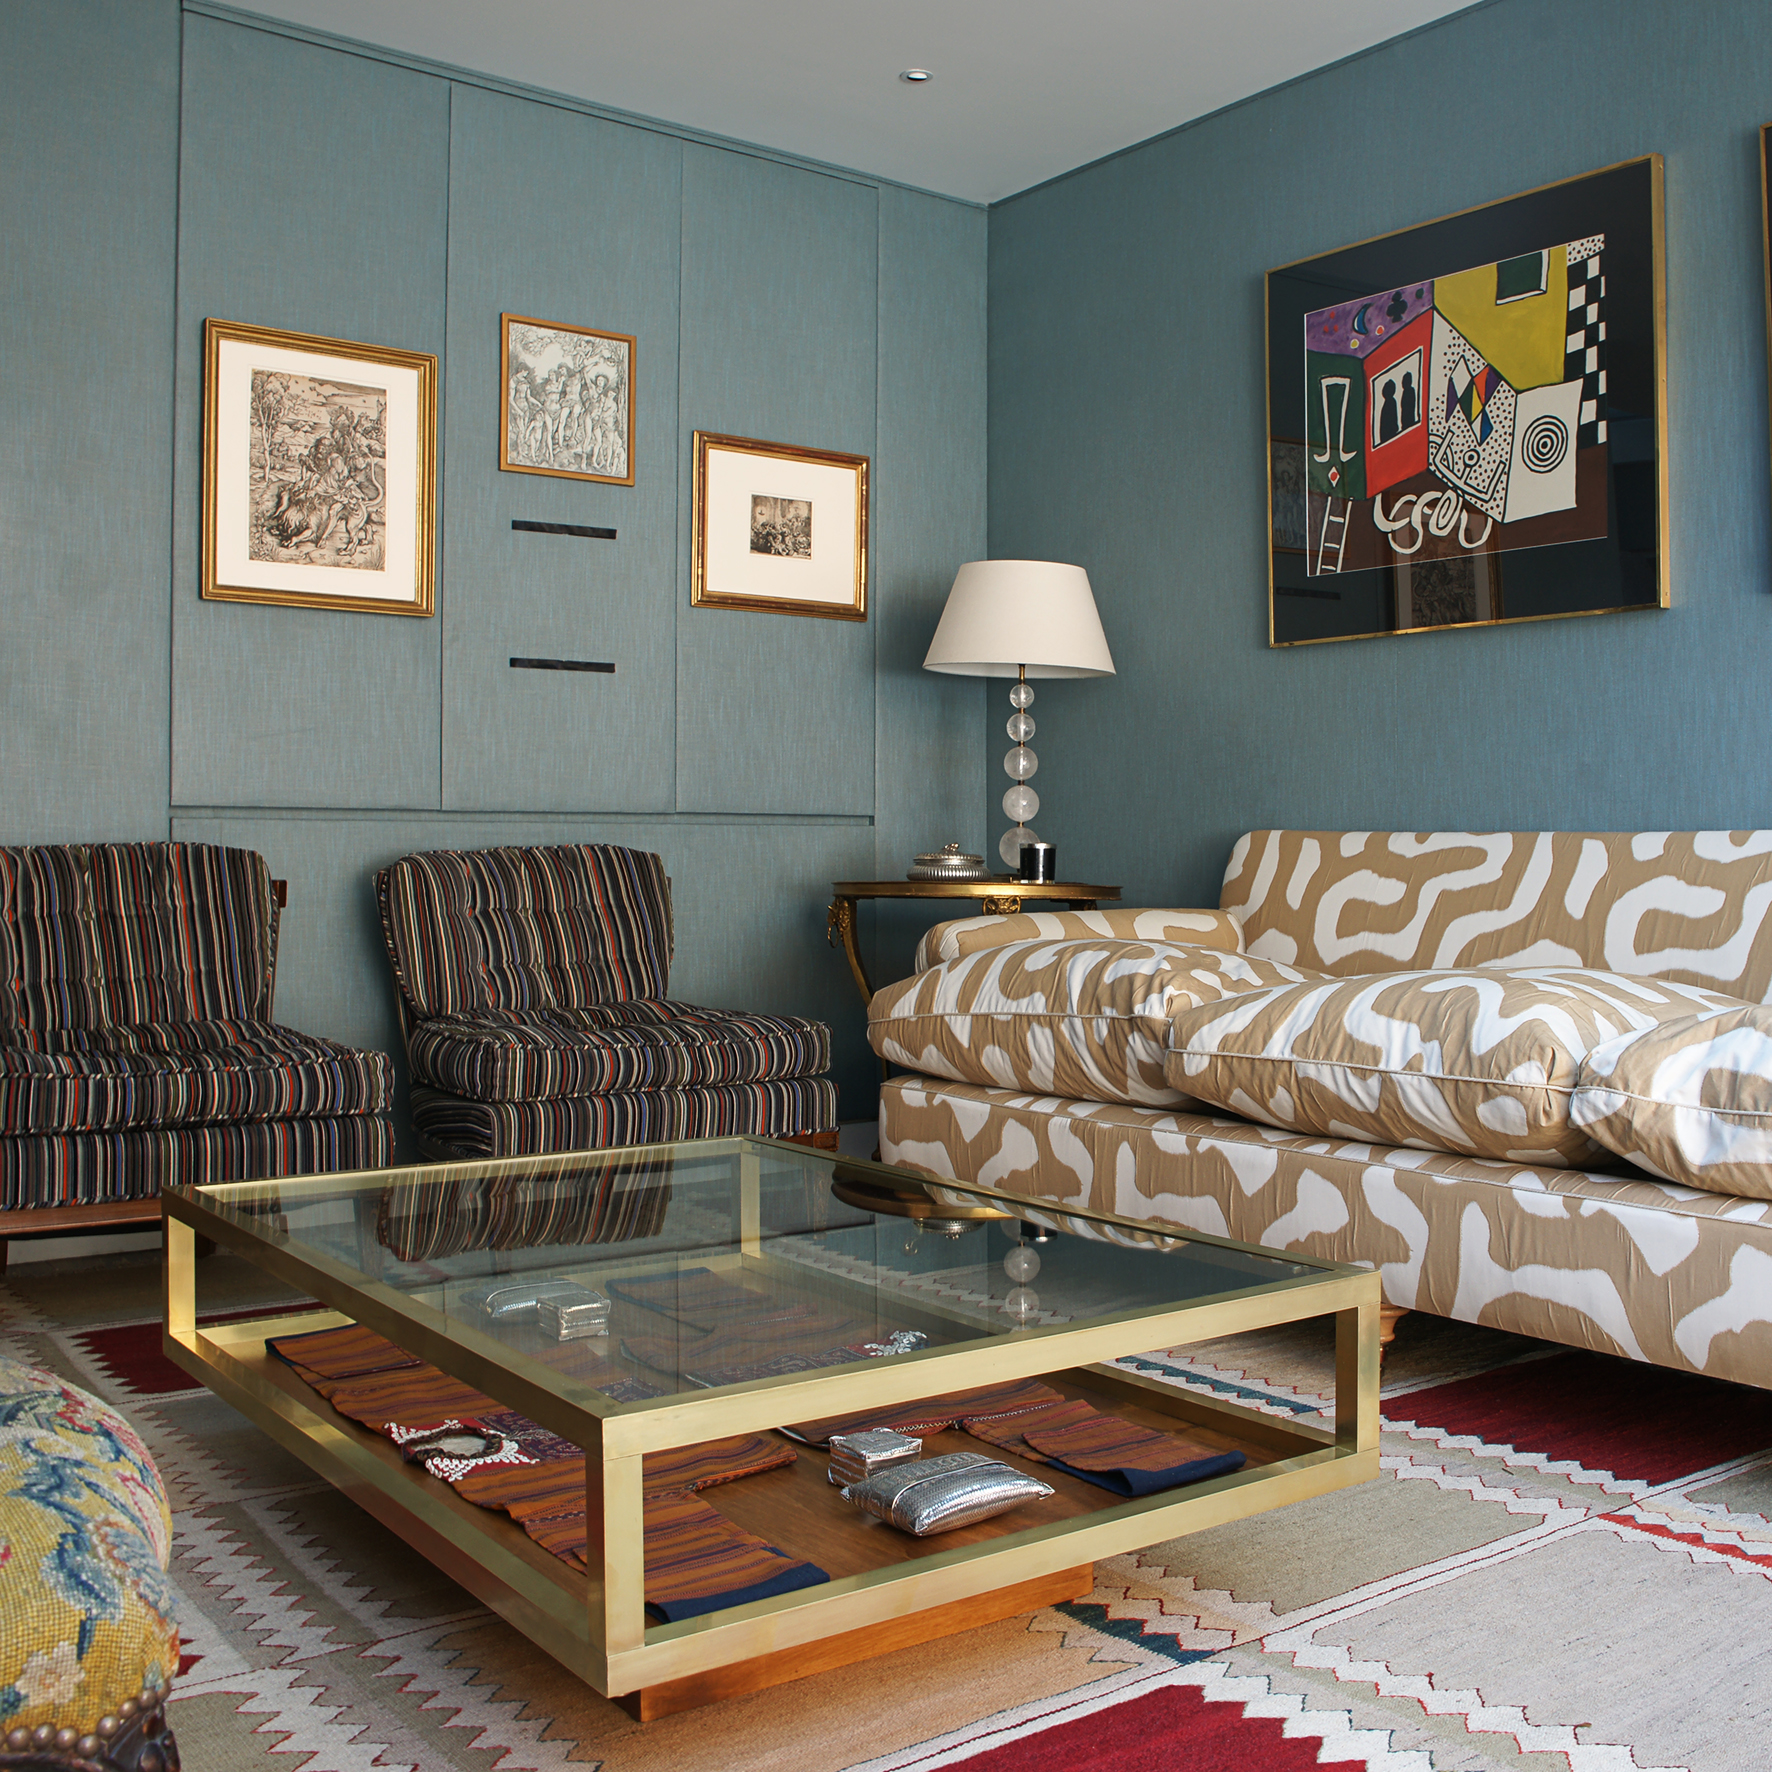 Couchtisch Messing Save Or Splurge: Brass And Glass Coffee Tables